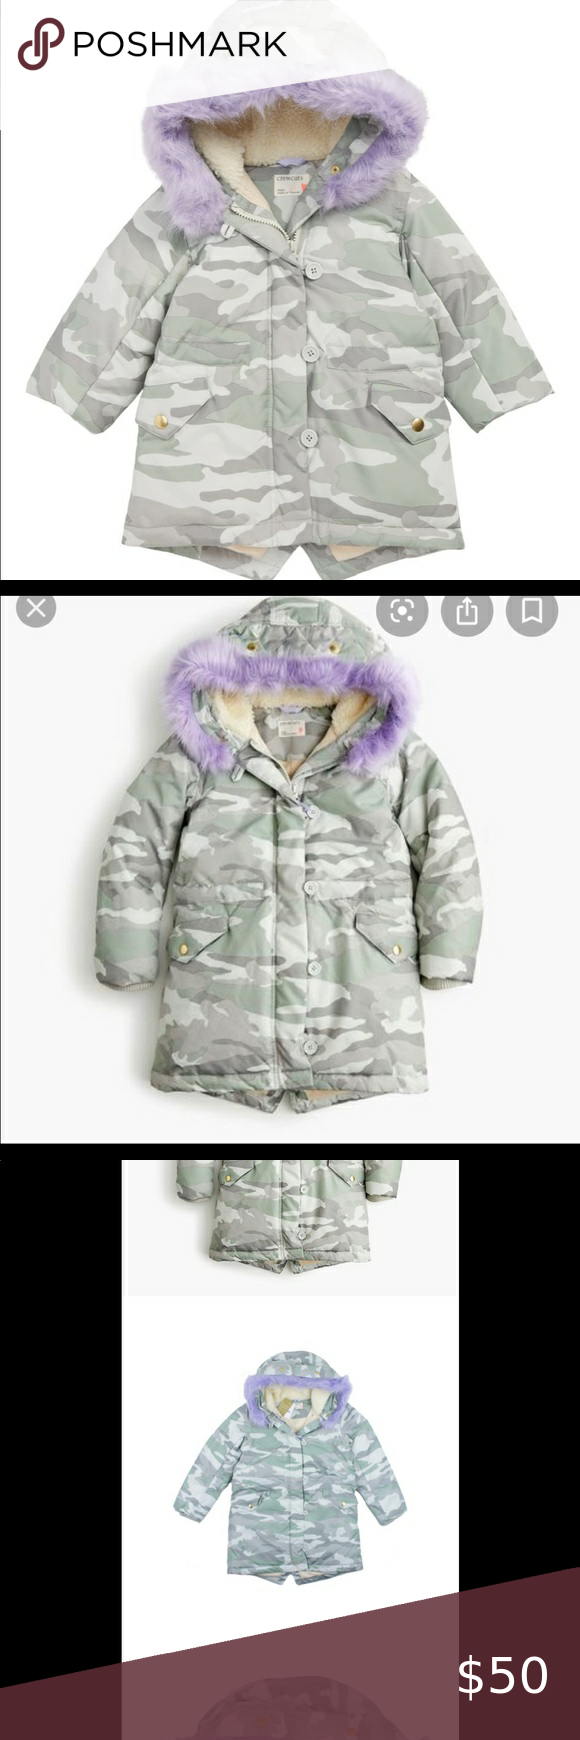 Crewcuts Camo Puffer Jacket Removable Lavender 10 Camo Puffer Jacket Puffer Jackets Crewcuts [ 1740 x 580 Pixel ]